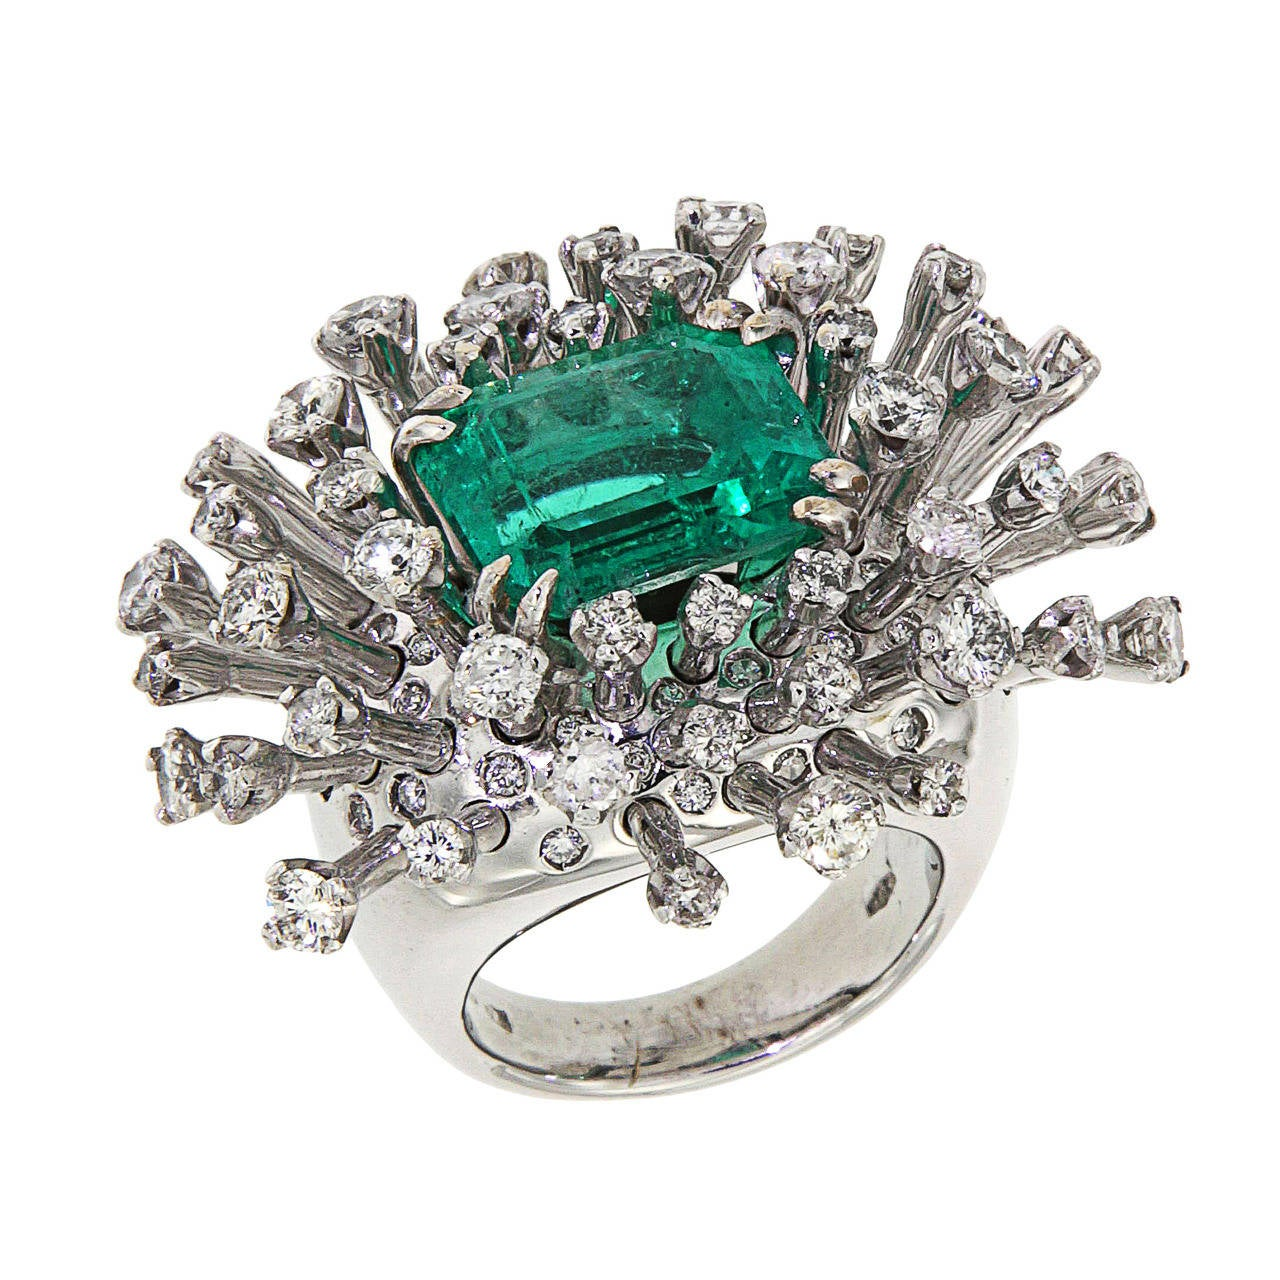 6.26 Carat Green Emerald Diamonds White 18K Gold Cocktail Ring Made In Italy In New Condition For Sale In Milano, IT